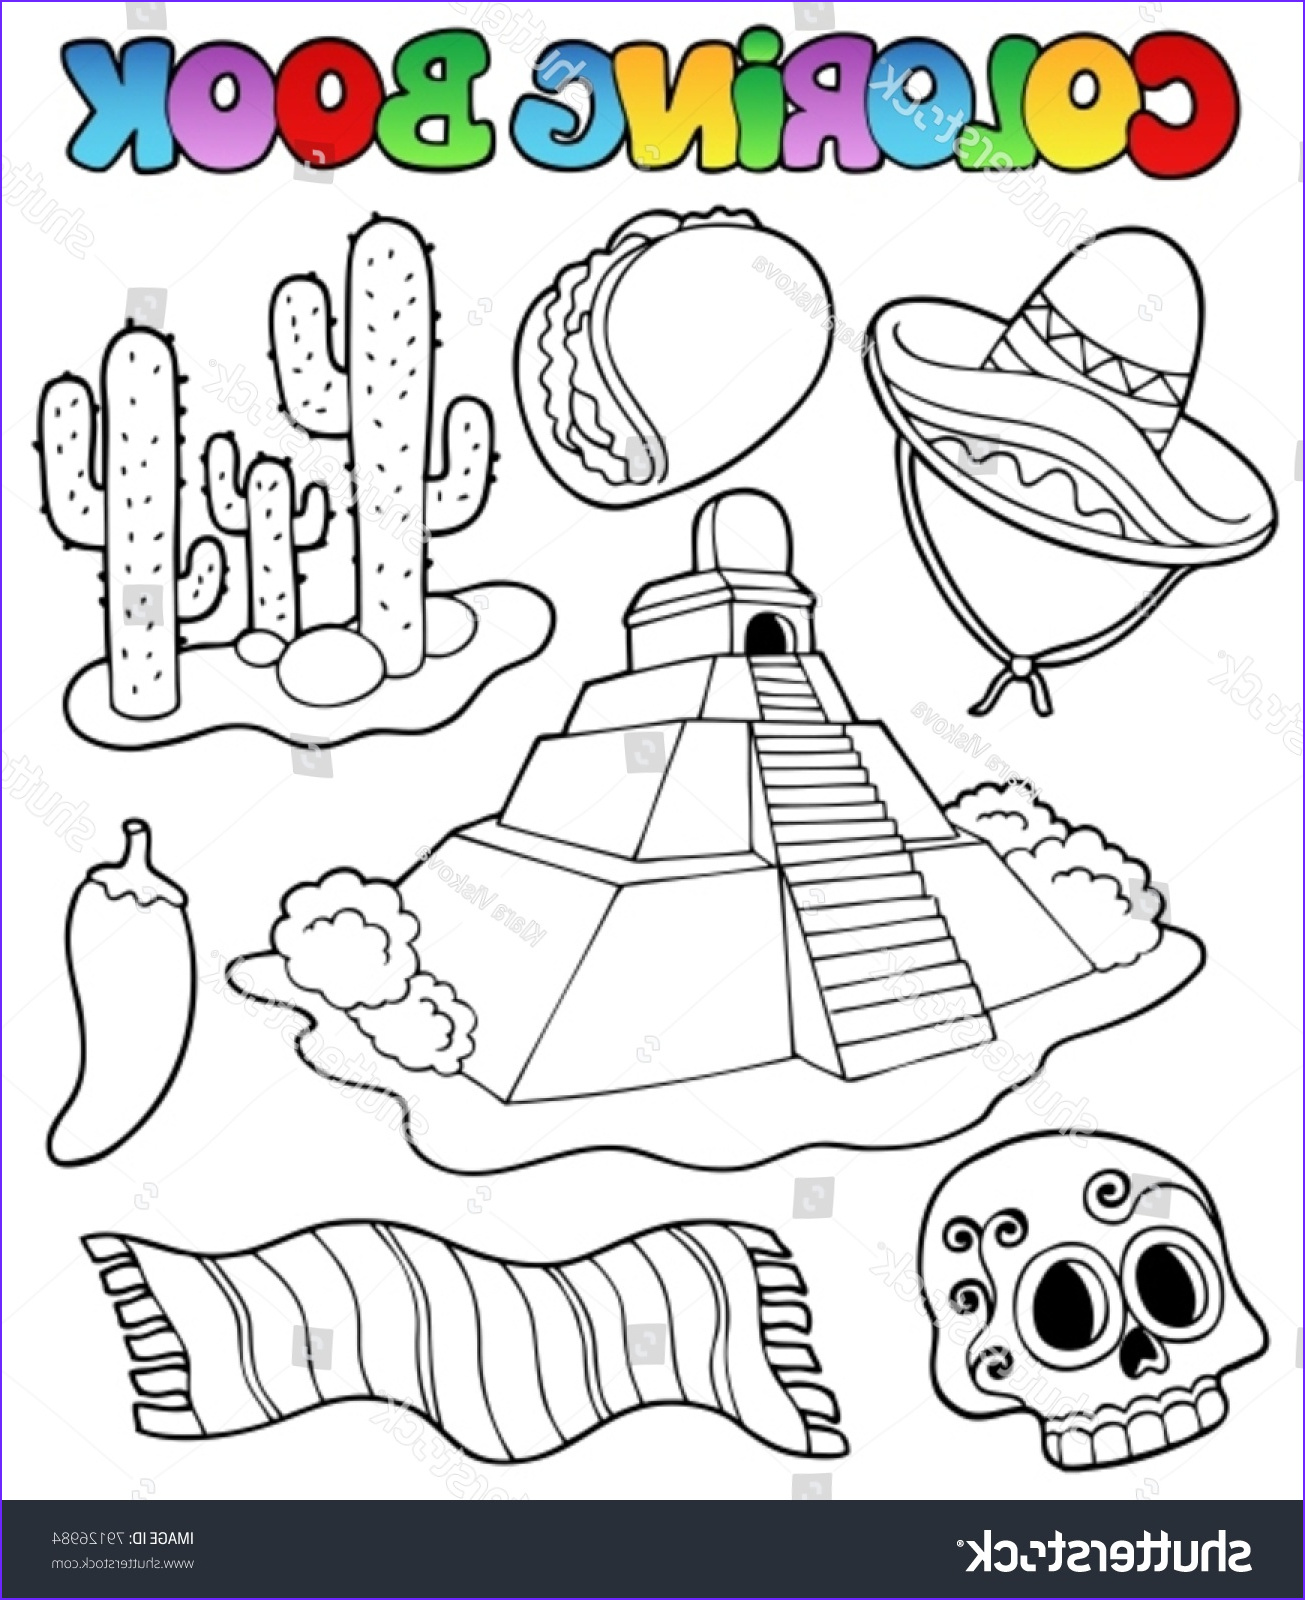 Mexican Coloring Book Best Of Collection Coloring Book with Mexican theme 1 Vector Illustration